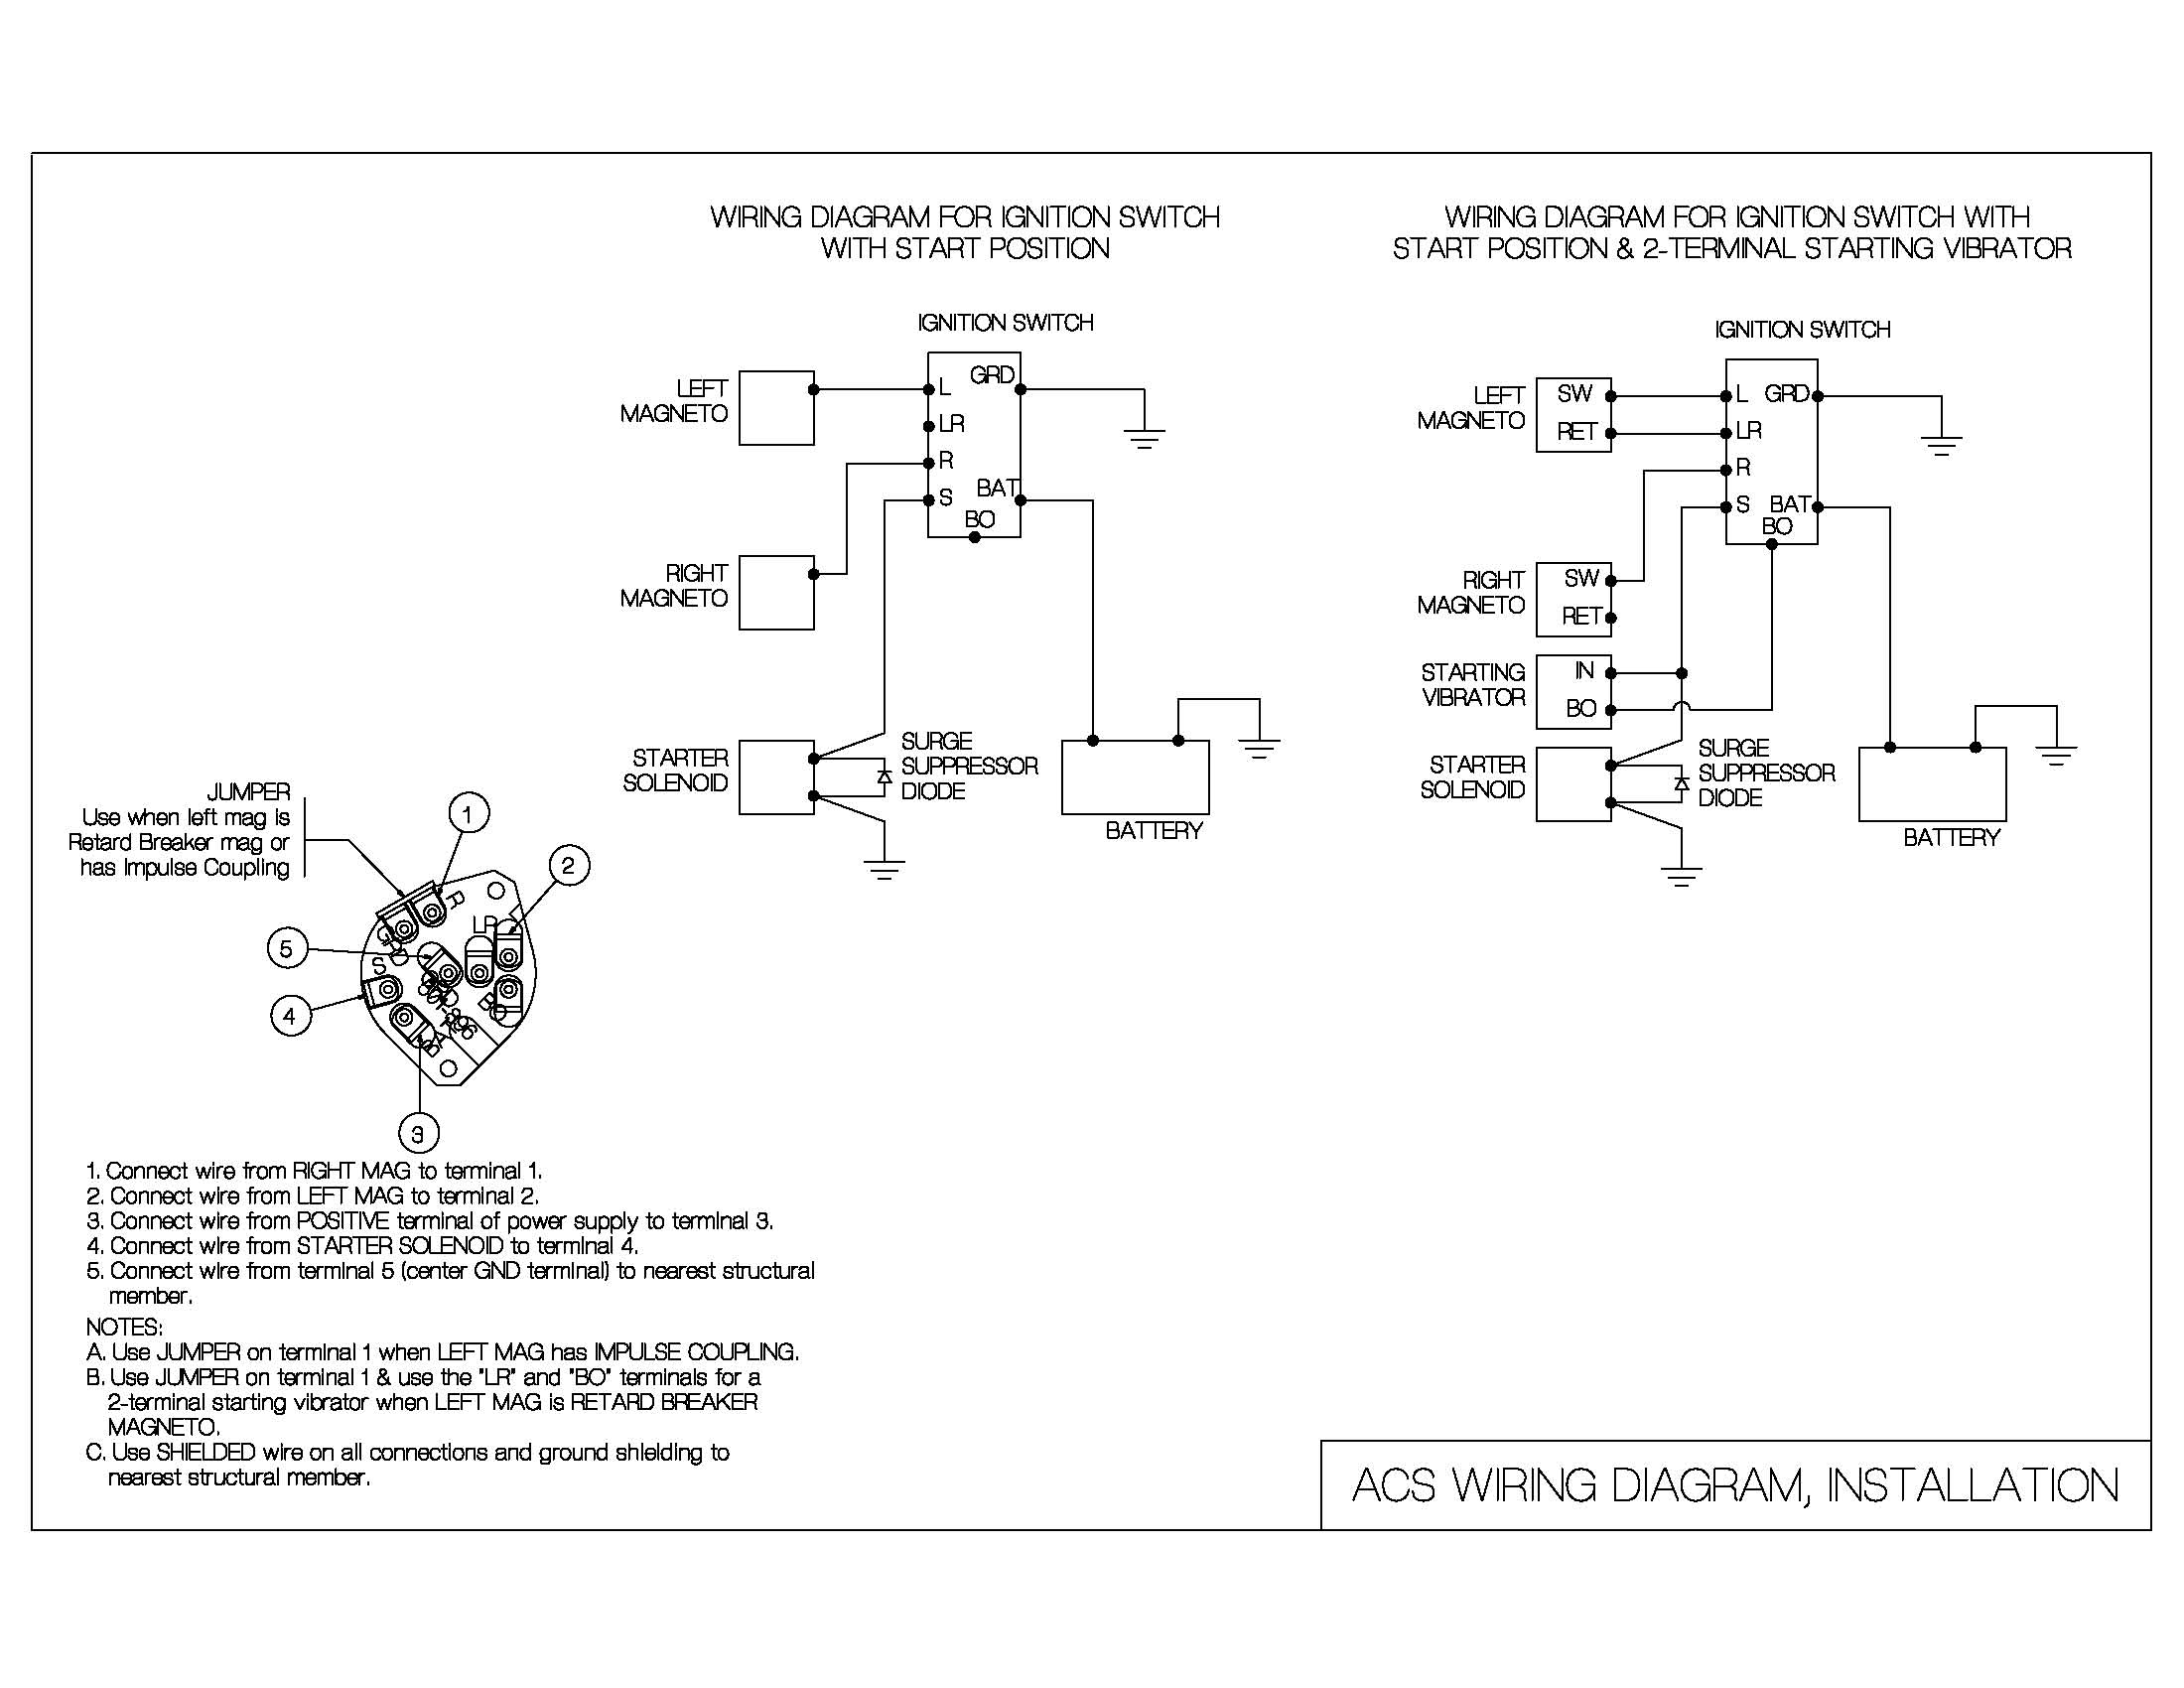 Wiring Diagram ignition switch wiring diagram acs products company wiring diagram ignition switch 92-6785 at creativeand.co